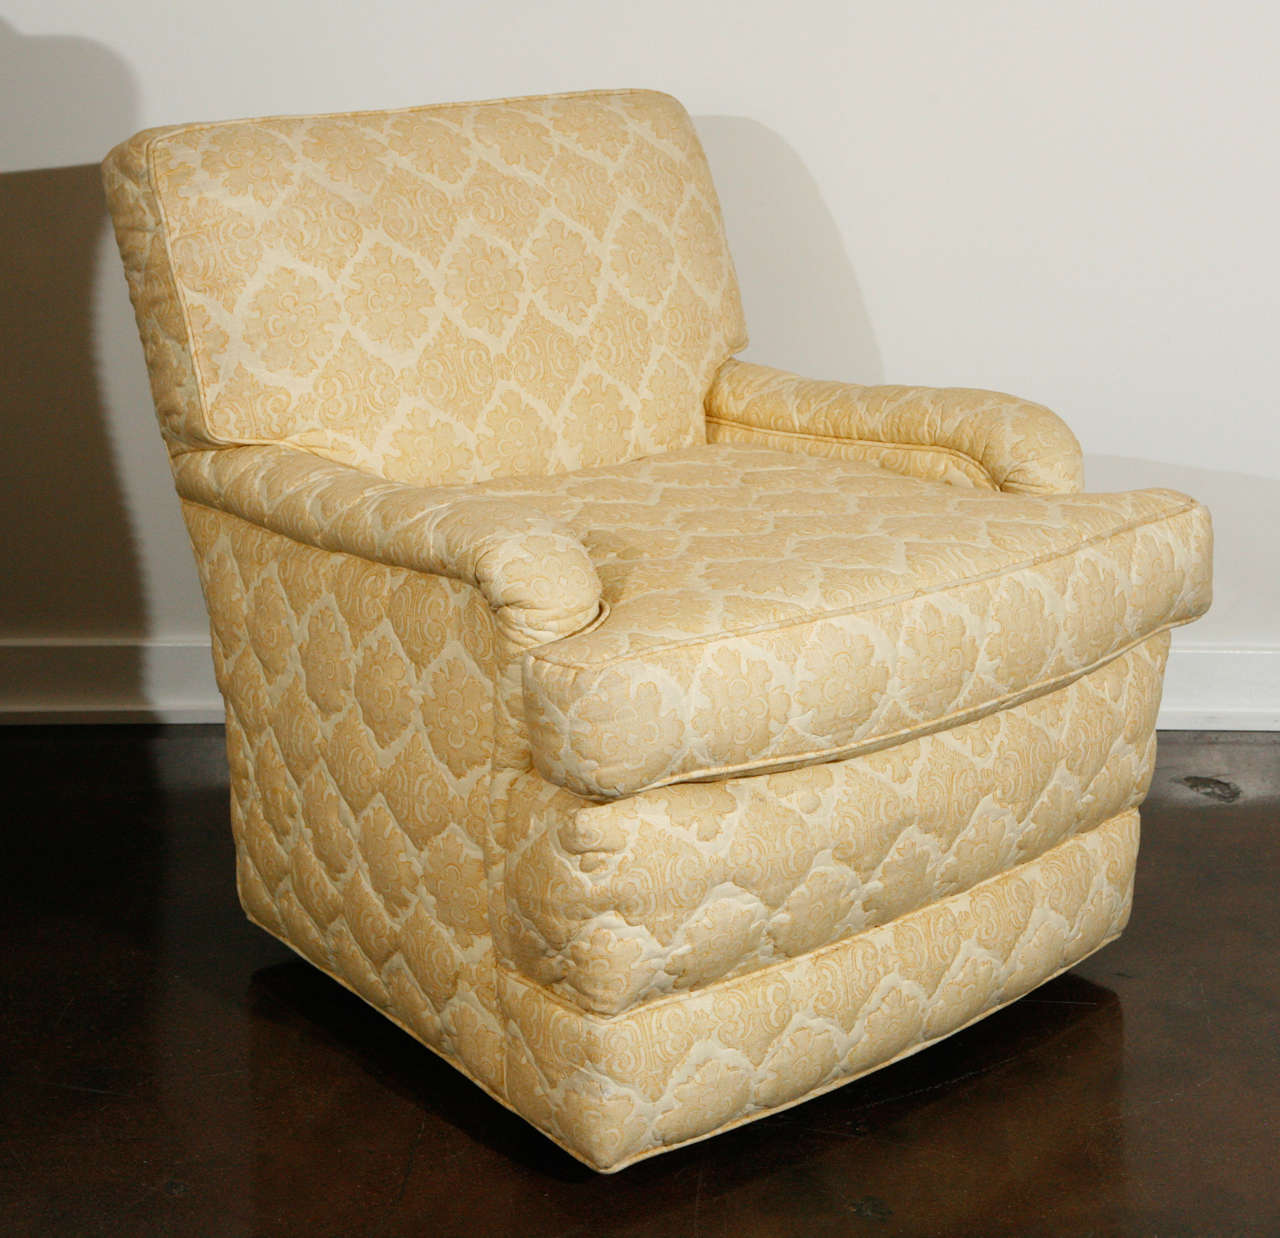 quilted swivel chair dxracer gaming chairs uk pair of william haines quotseniah quot in original